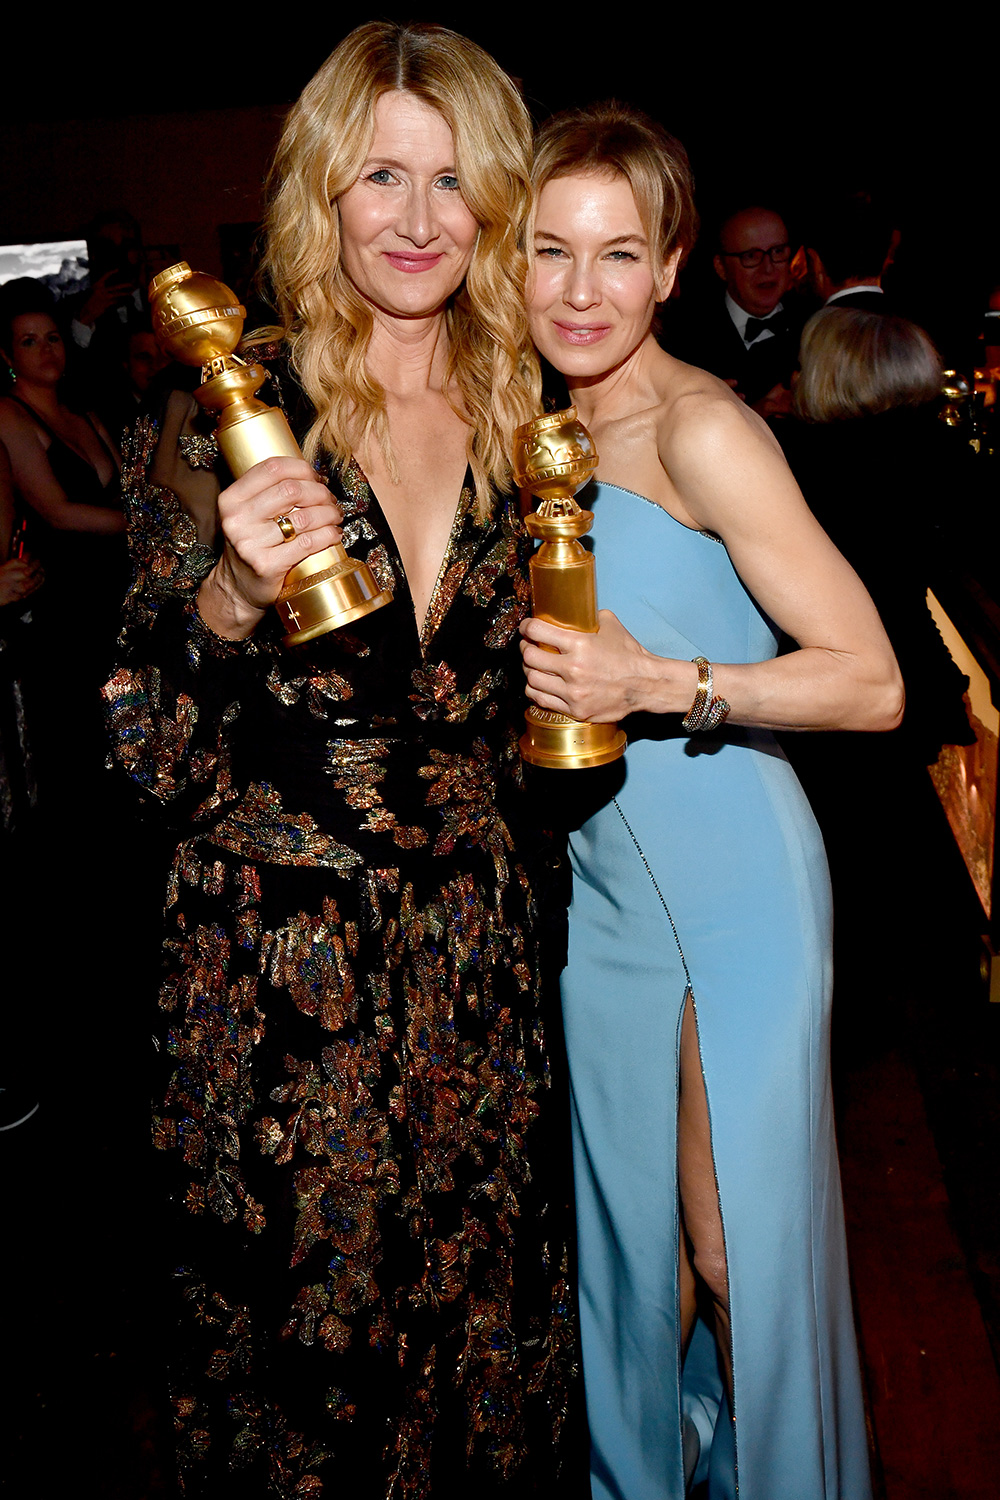 Laura Dern and Renee Zellweger